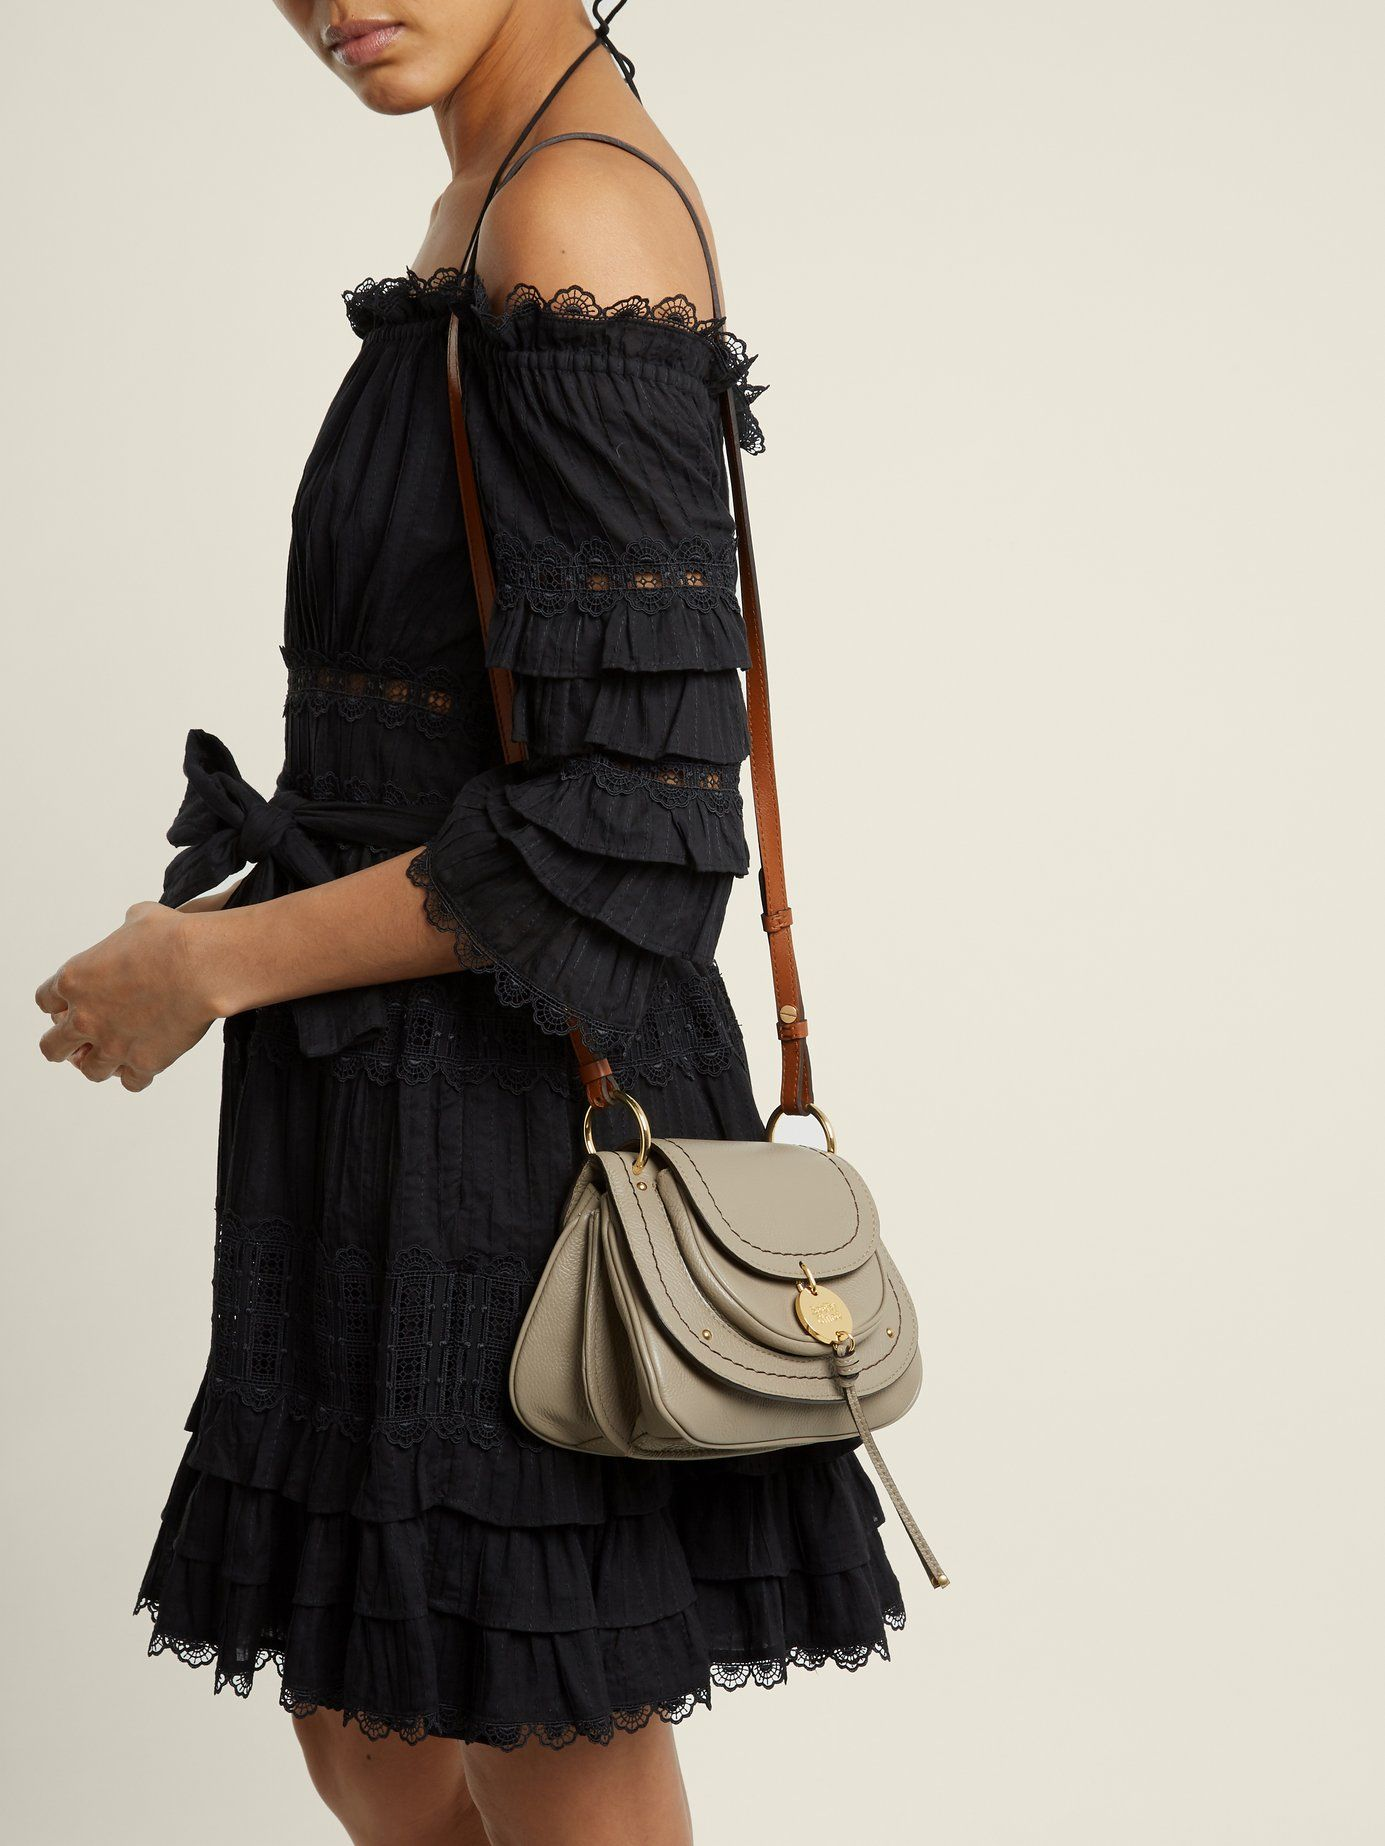 See by chloé susie mini leather crossbody bag accessories